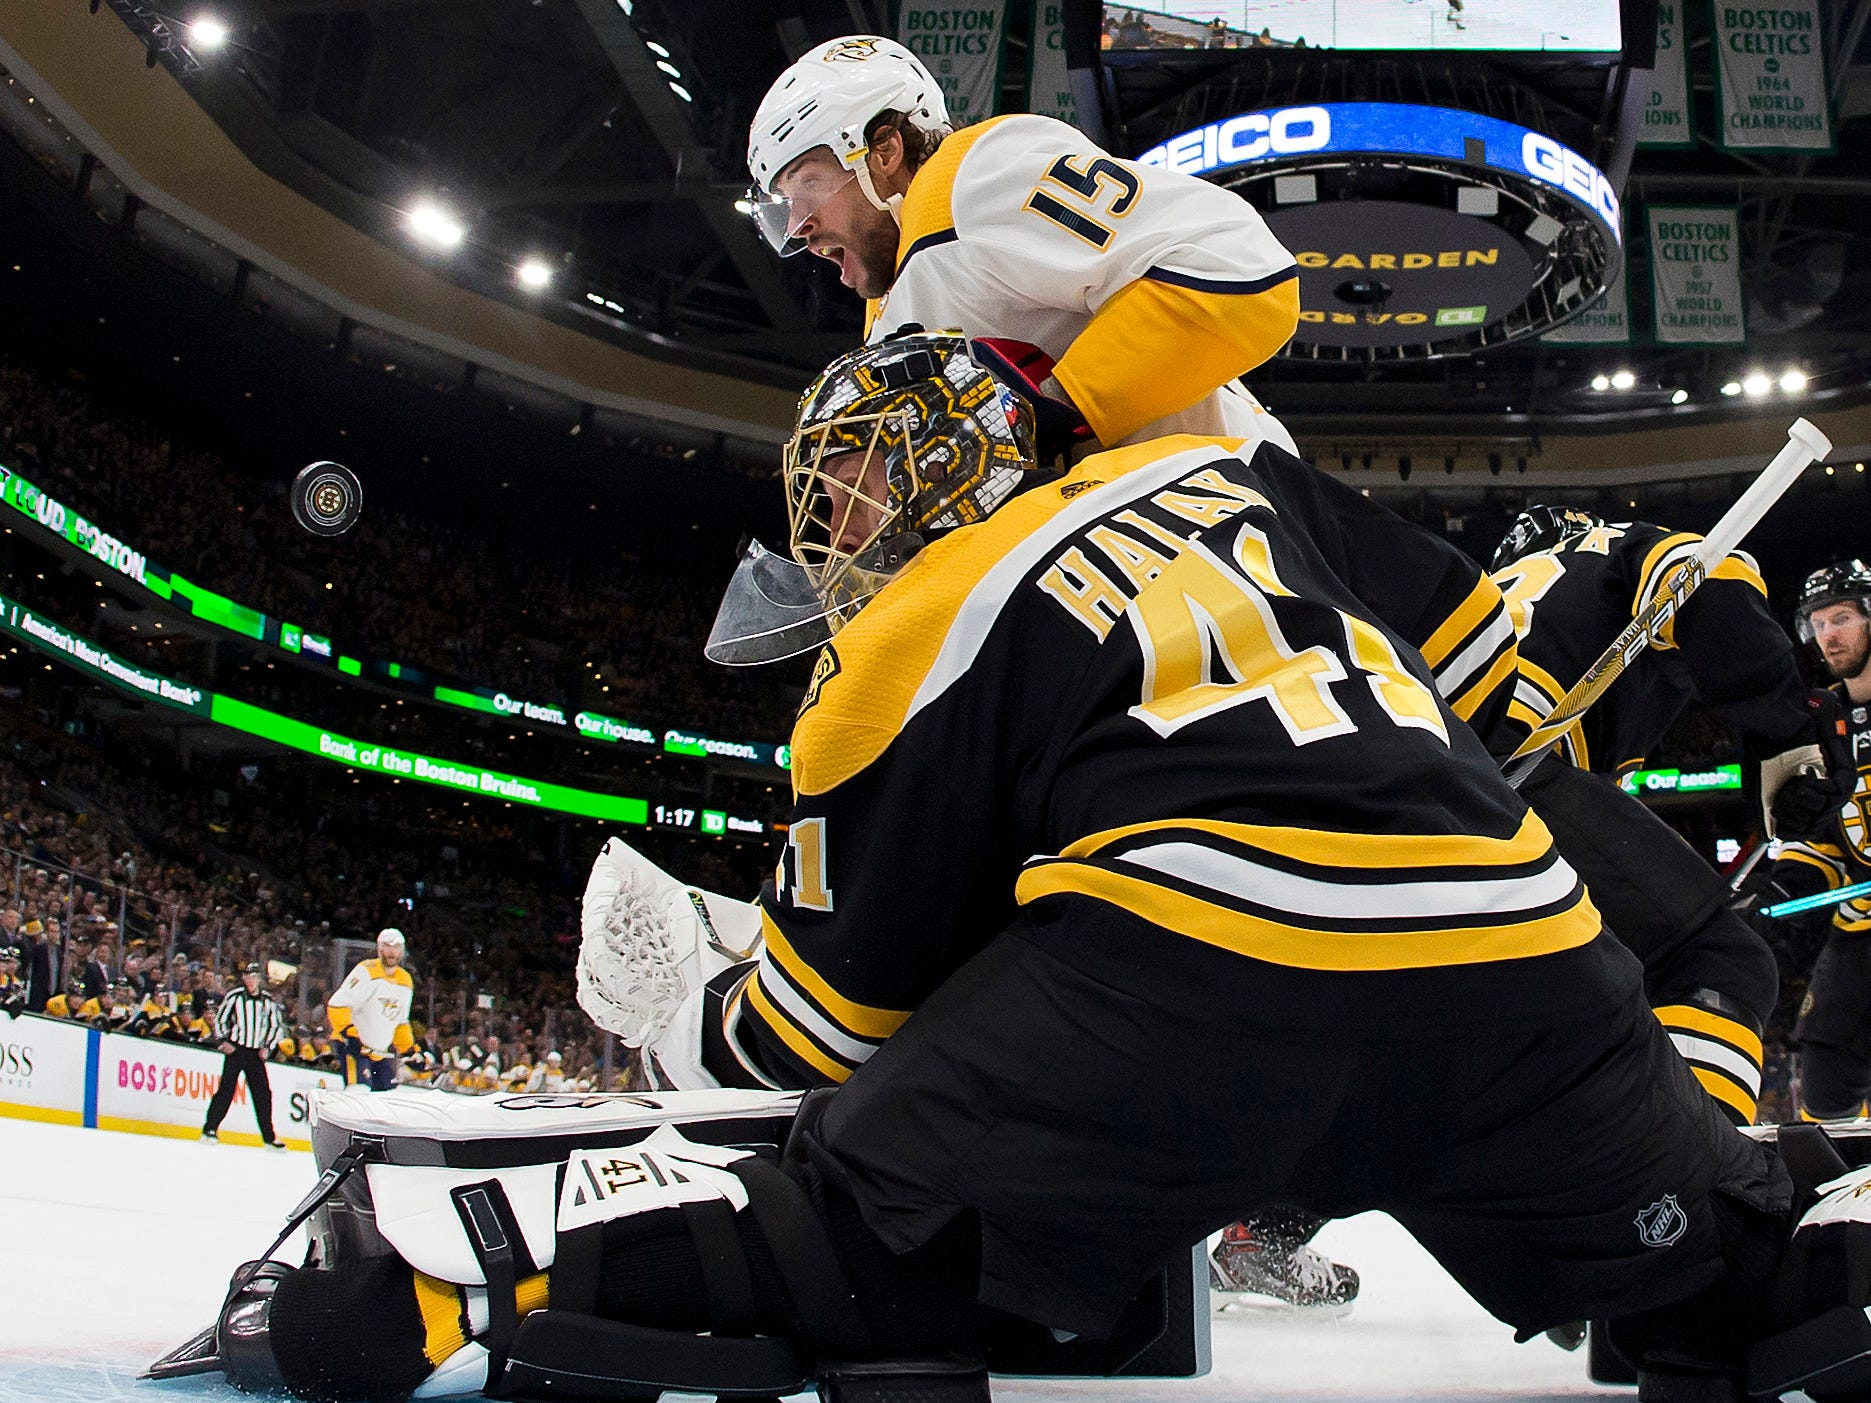 Nashville Predators right wing Craig Smith (15) eyes a rebound off a save by Boston Bruins goaltender Jaroslav Halak (41) during the first period of Boston's 5-2 win at TD Garden.